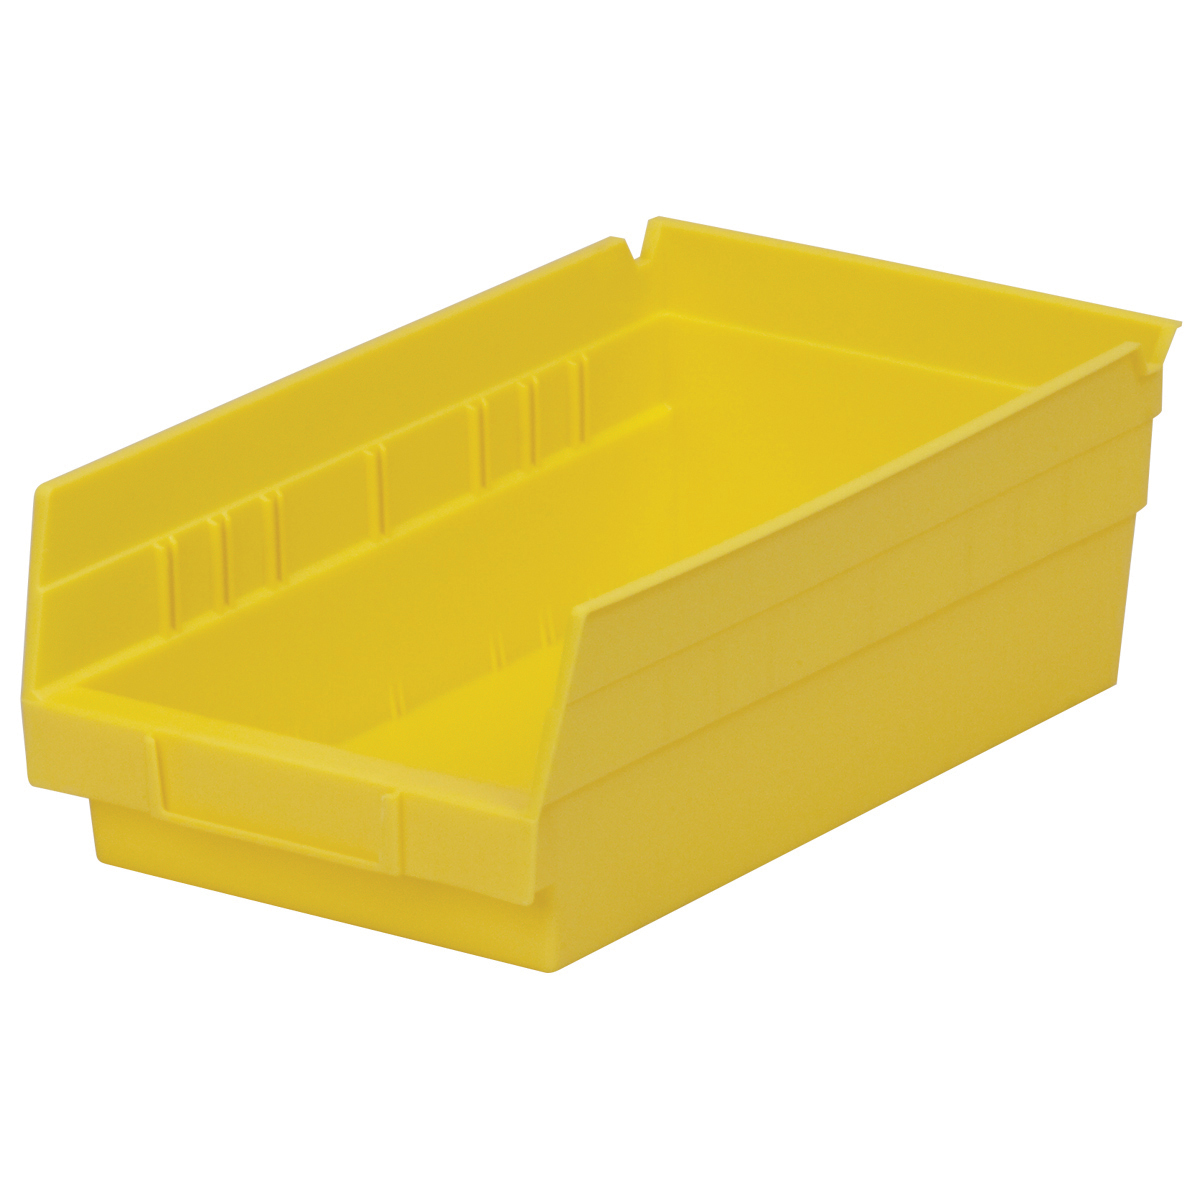 Shelf Bin 11-5/8 x 6-5/8 x 4, Yellow (30130YELLO).  This item sold in carton quantities of 12.